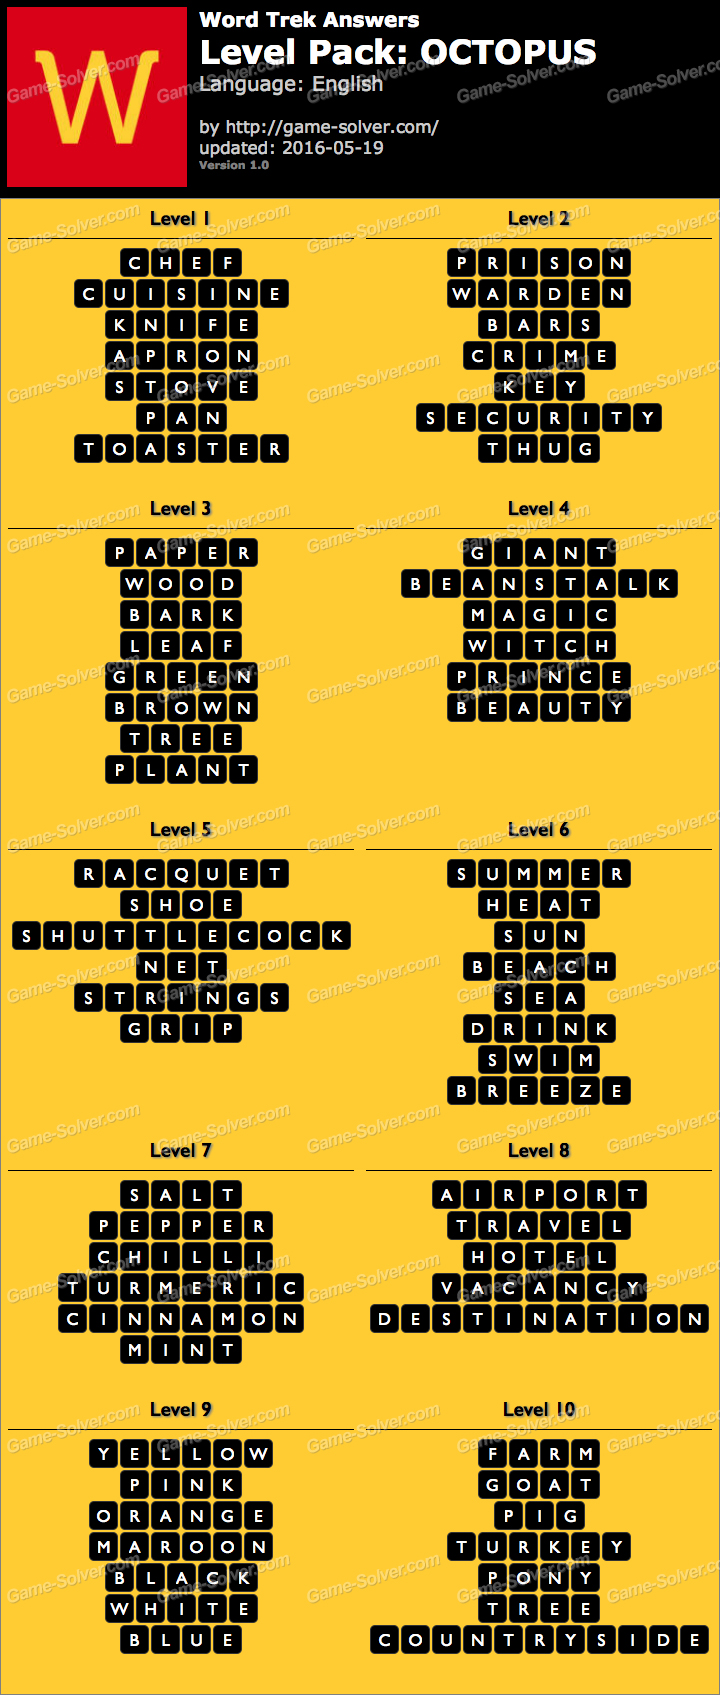 Word Trek Level Pack 45 OCTOPUS Answers - Game Solver